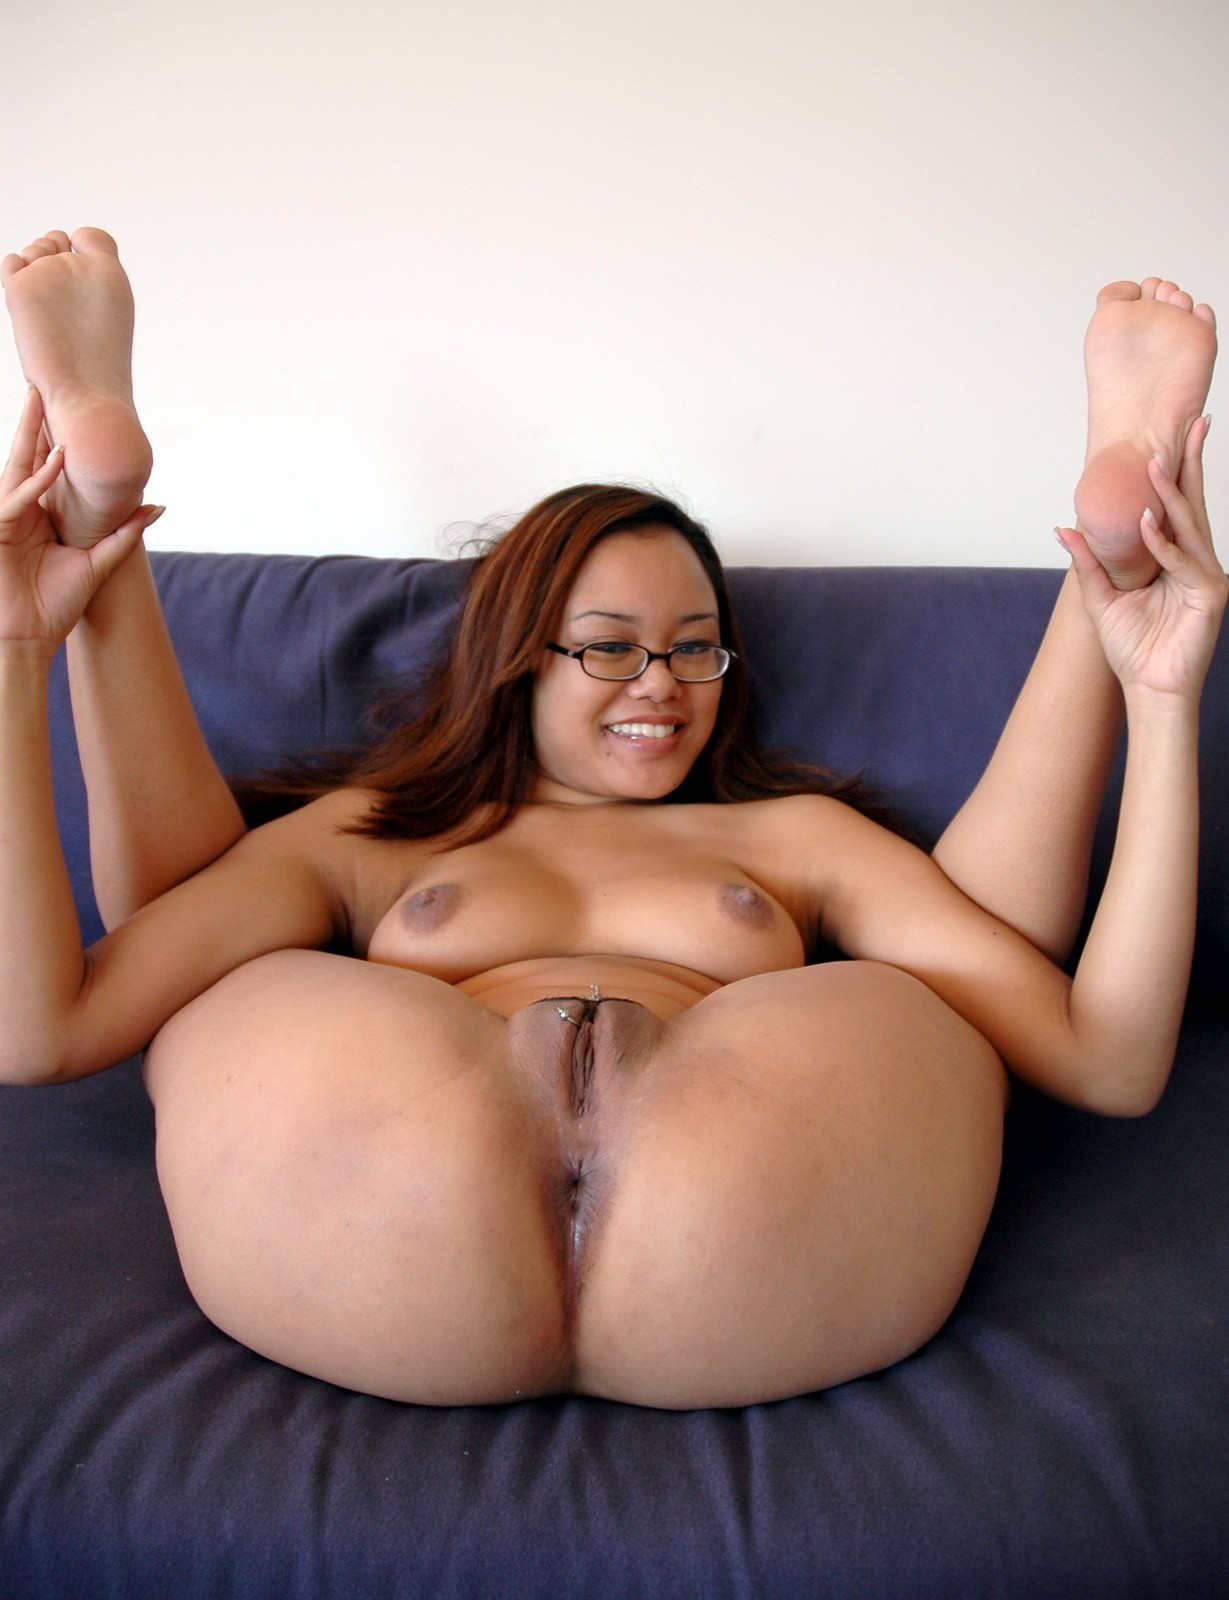 donna anal story – Anal